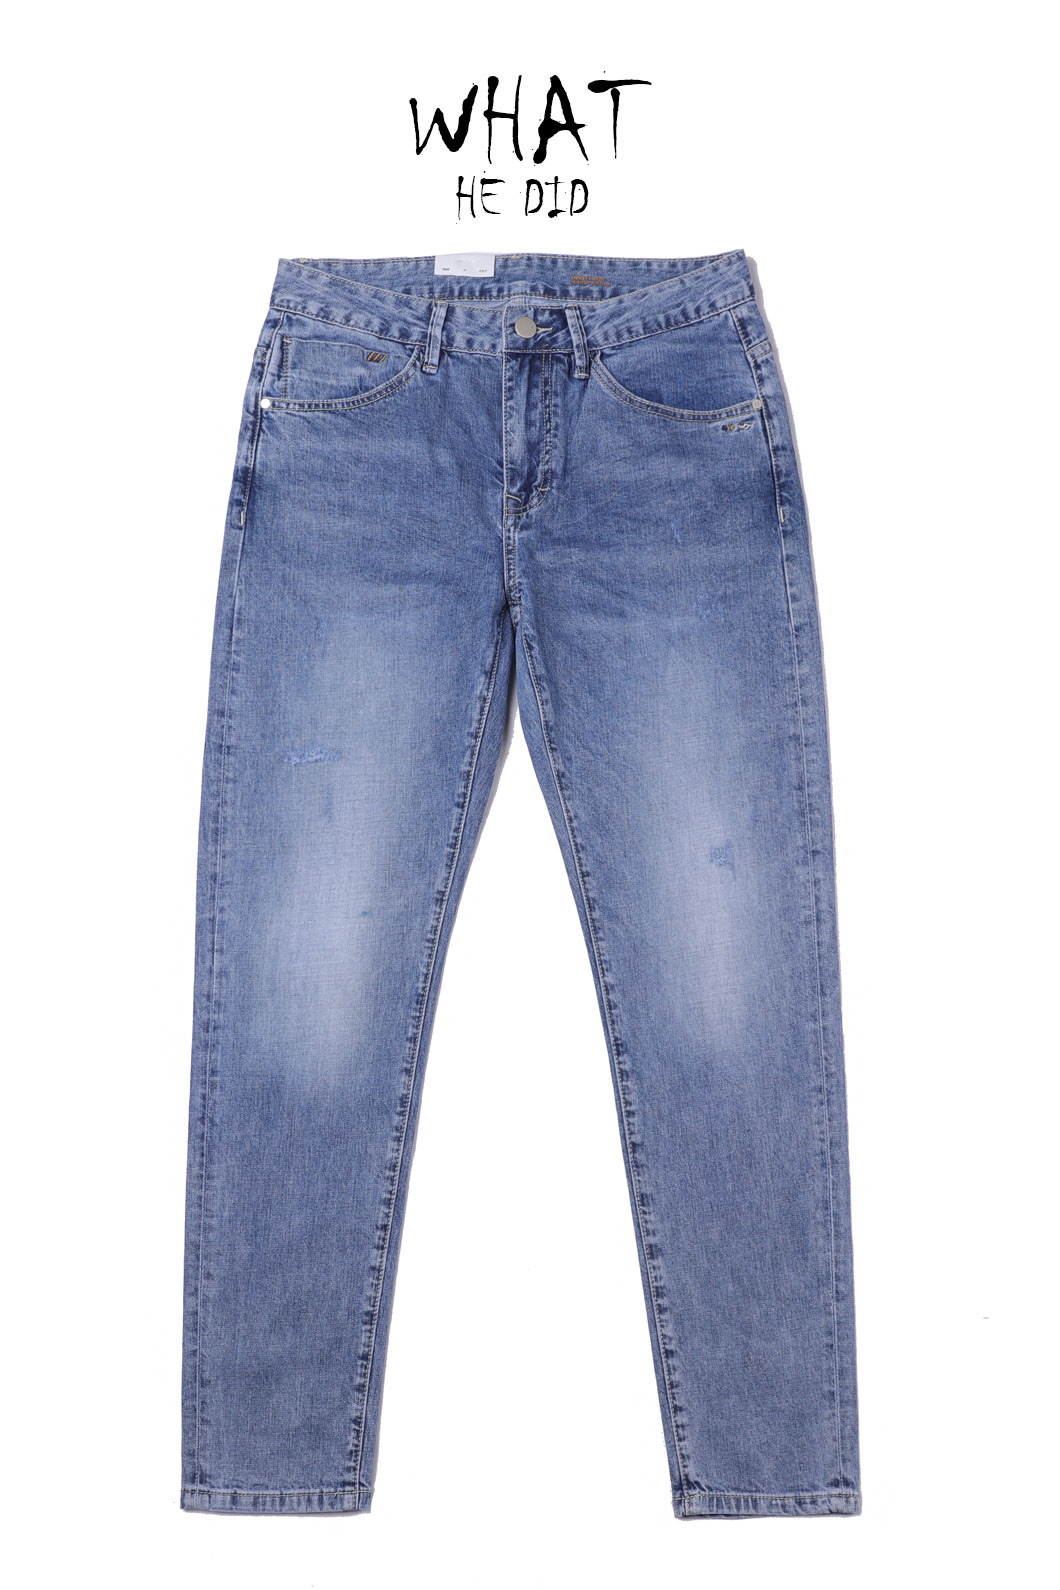 WHAT OGT3238 BLUE JEANS4차 재입고완료!